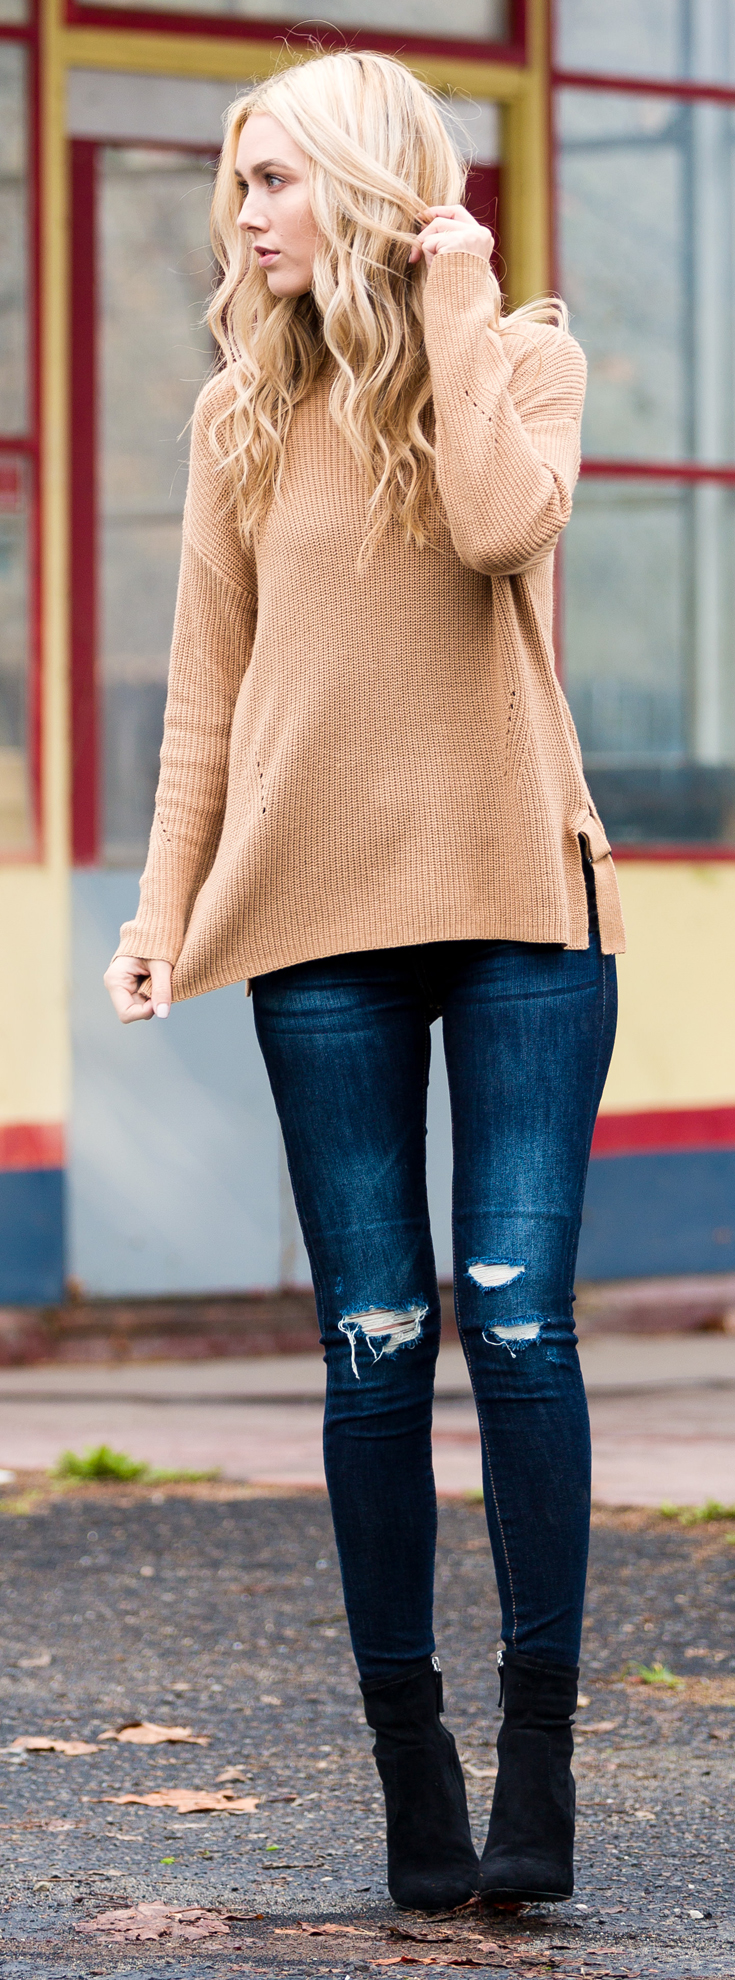 Camel sweater, Blue jeans and black boots - Sheridan Gregory, Blue Eyed Finch.